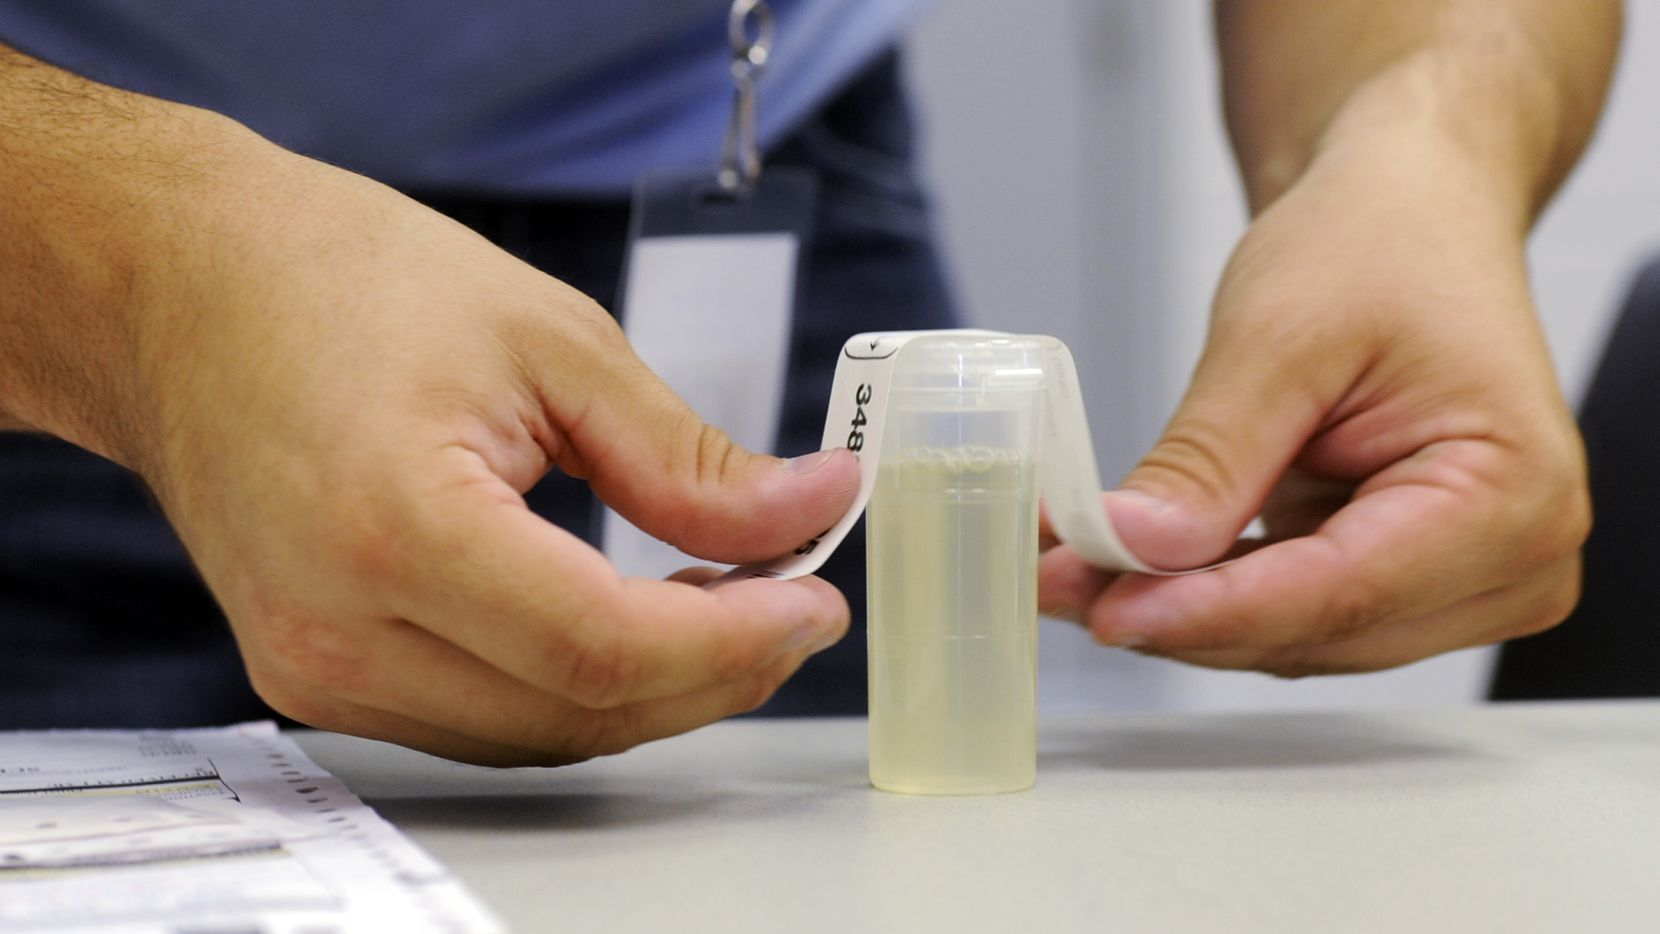 A worker labels a urine specimen vile in September 2011, at Linn State Technical College in Linn, Mo. (AP Photo/Kelley McCall)